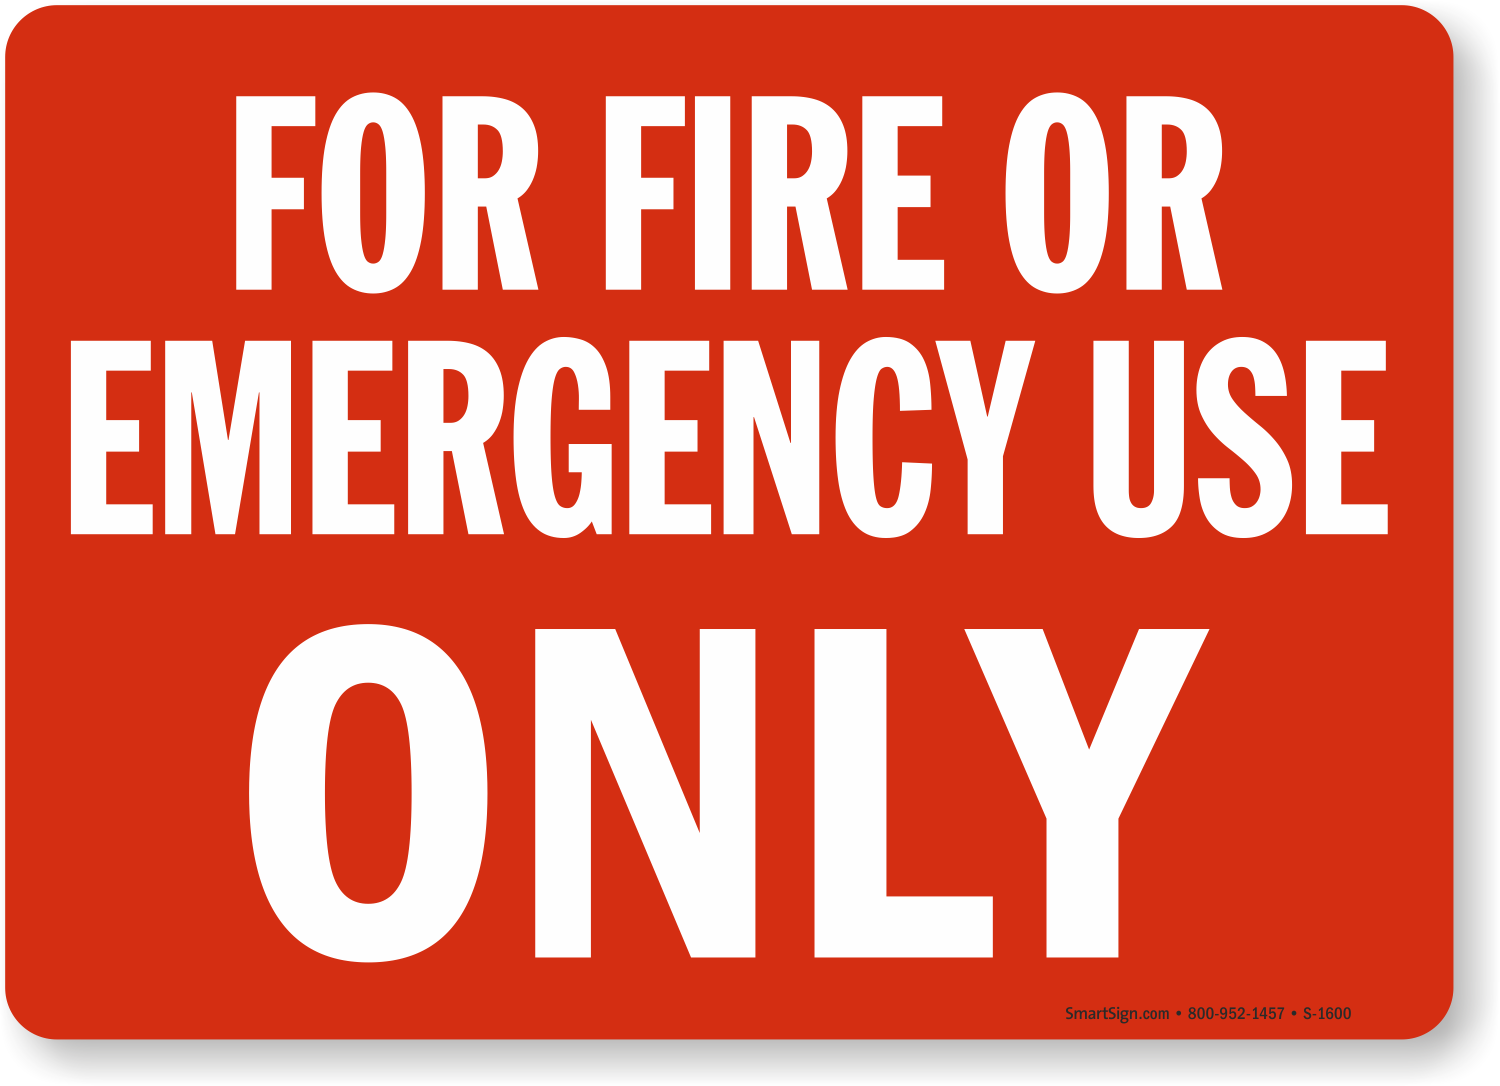 emergency use only   fire and emergency sign  sku s 1600 fire safety clip art border fire safety clip art flames